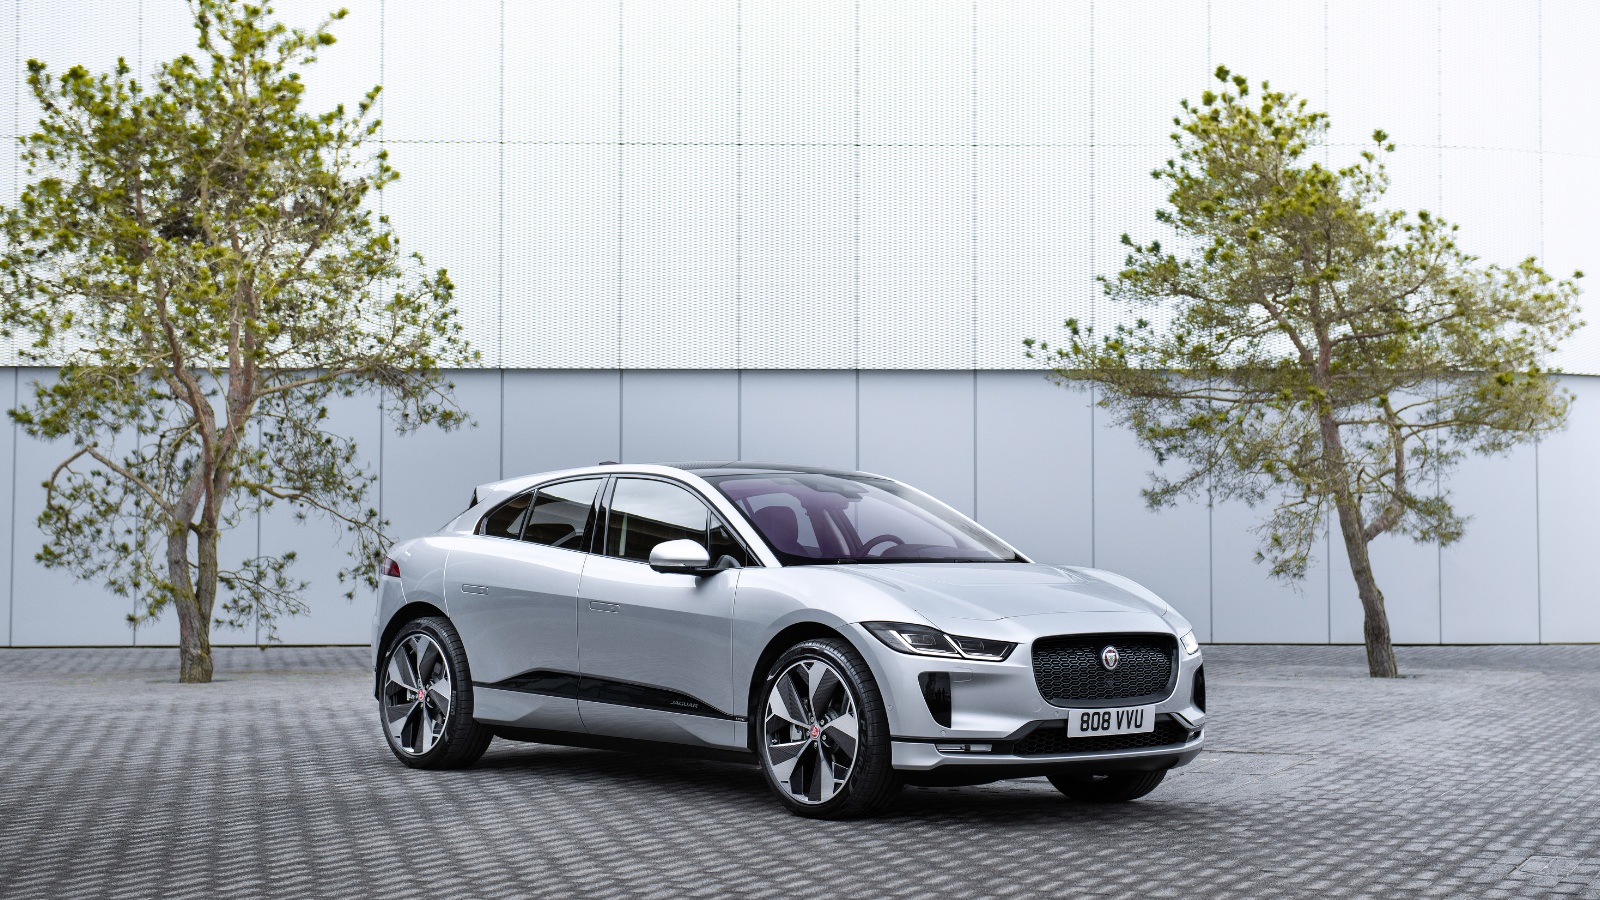 THE BENEFITS OF OWNING A JAGUAR I-PACE